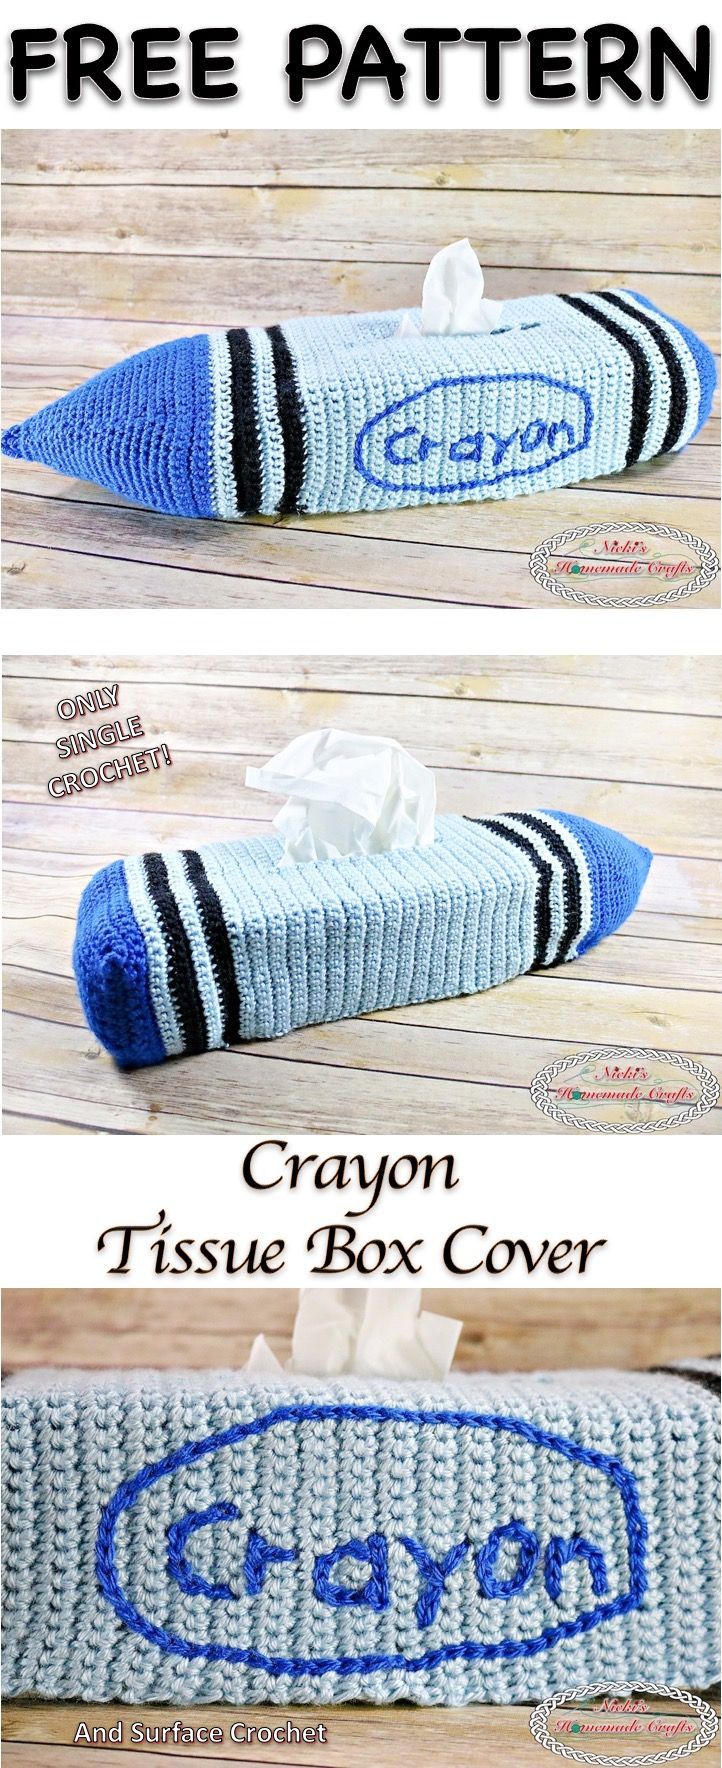 How to crochet a Crayon Tissue Box Cover - Free Crochet Pattern ...